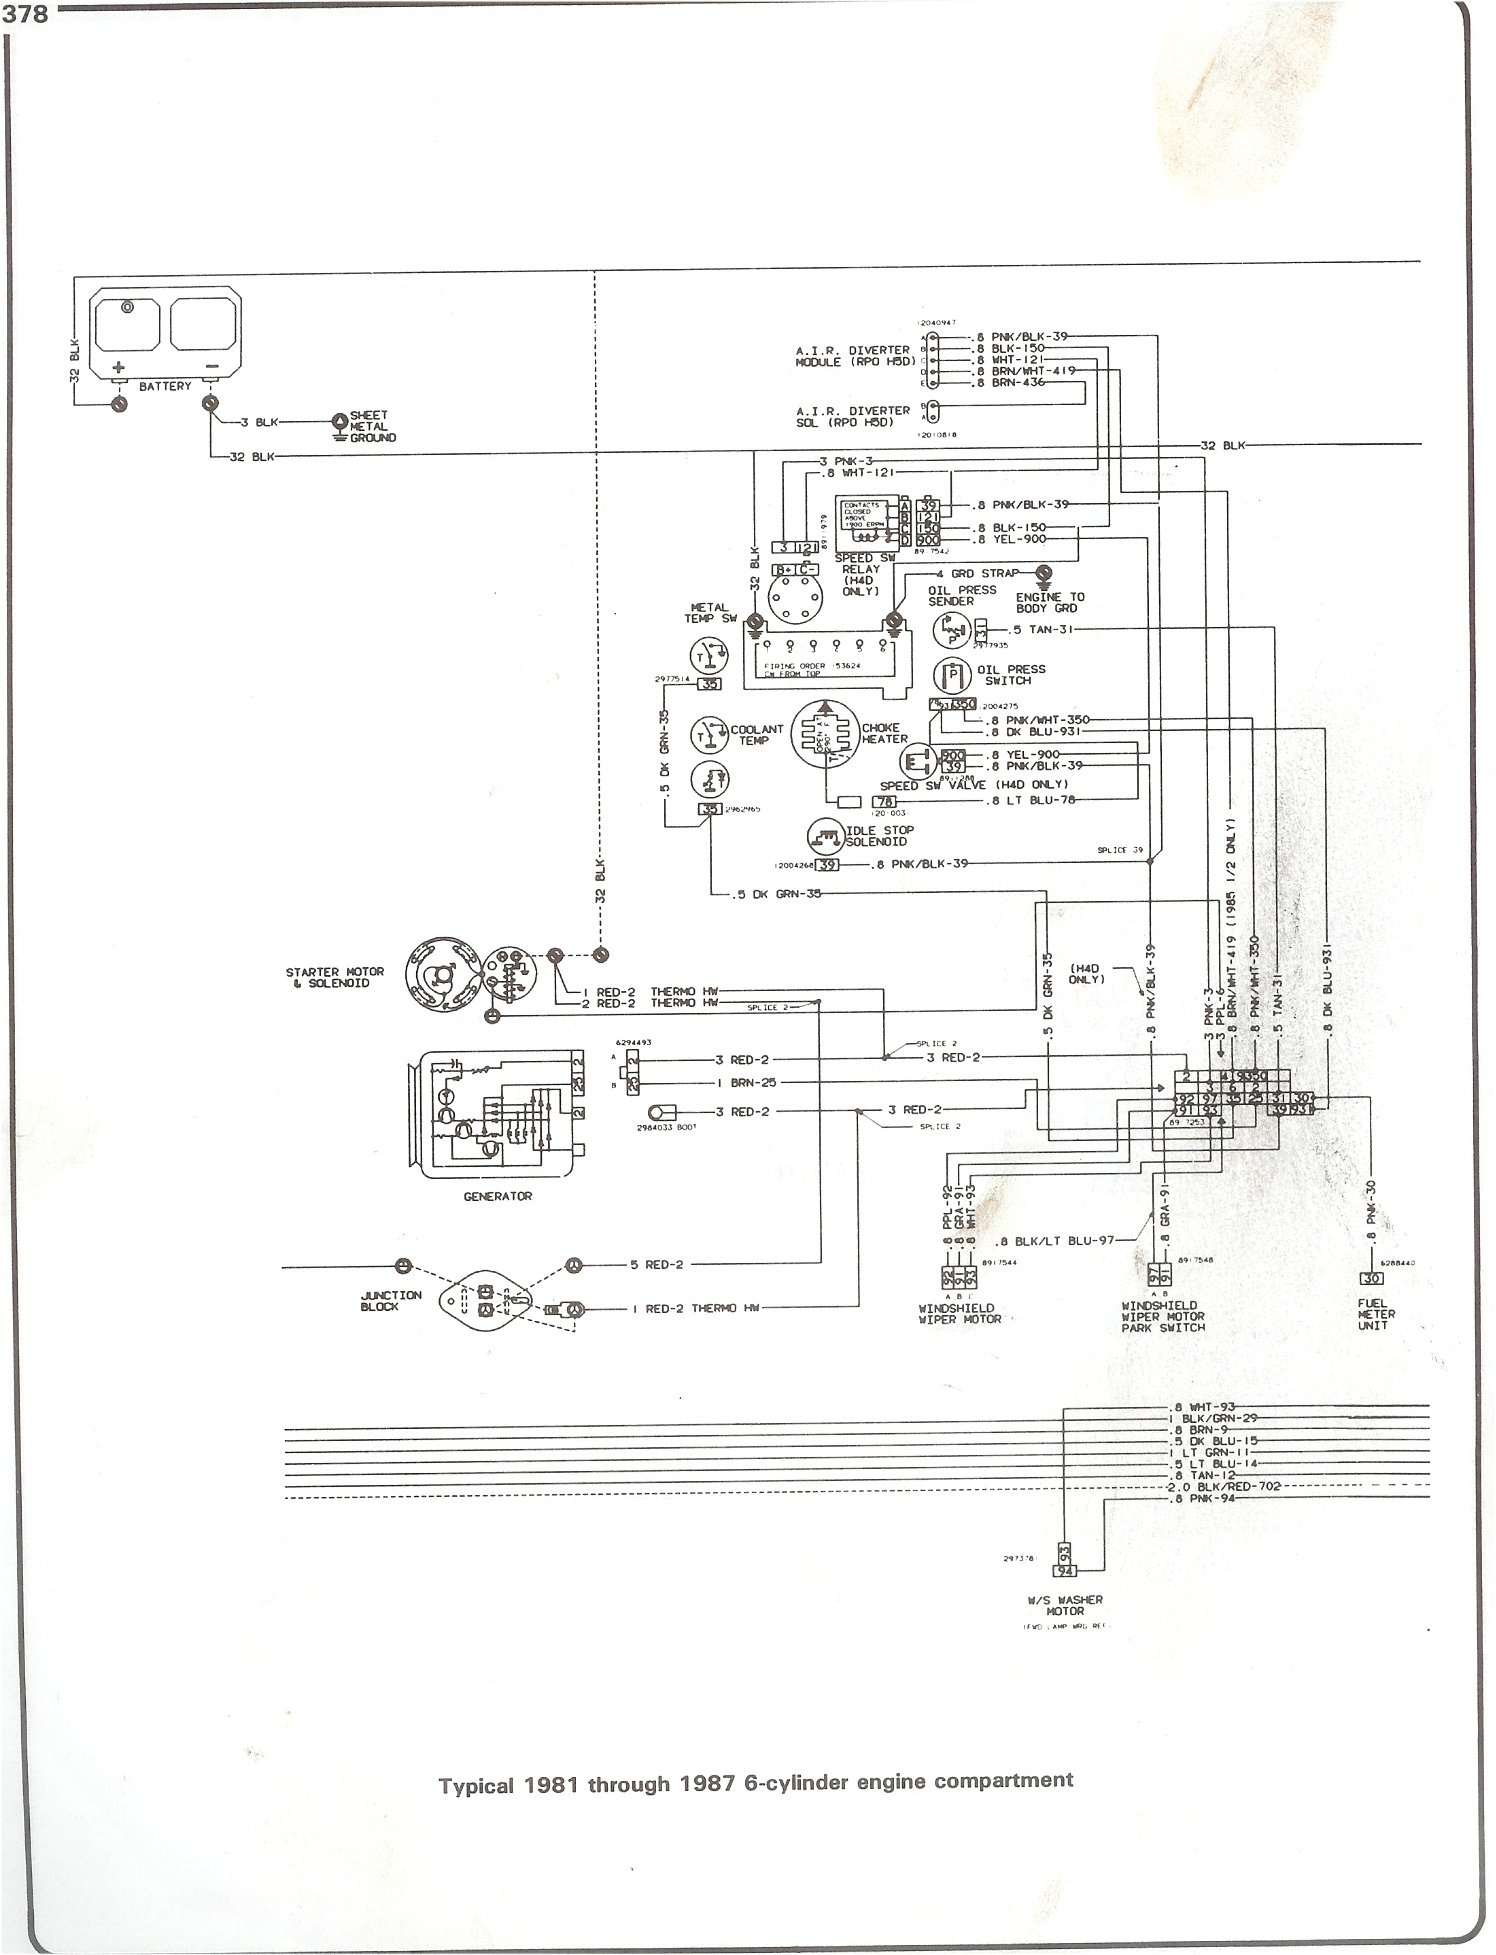 Kubota Rtv 900 Wiring Diagram And further 5 Wire Lvdt in addition Wiring diagrams together with Huskee Lt4200 Lawn Mower Wiring Diagram as well Wiring. on alternator wiring